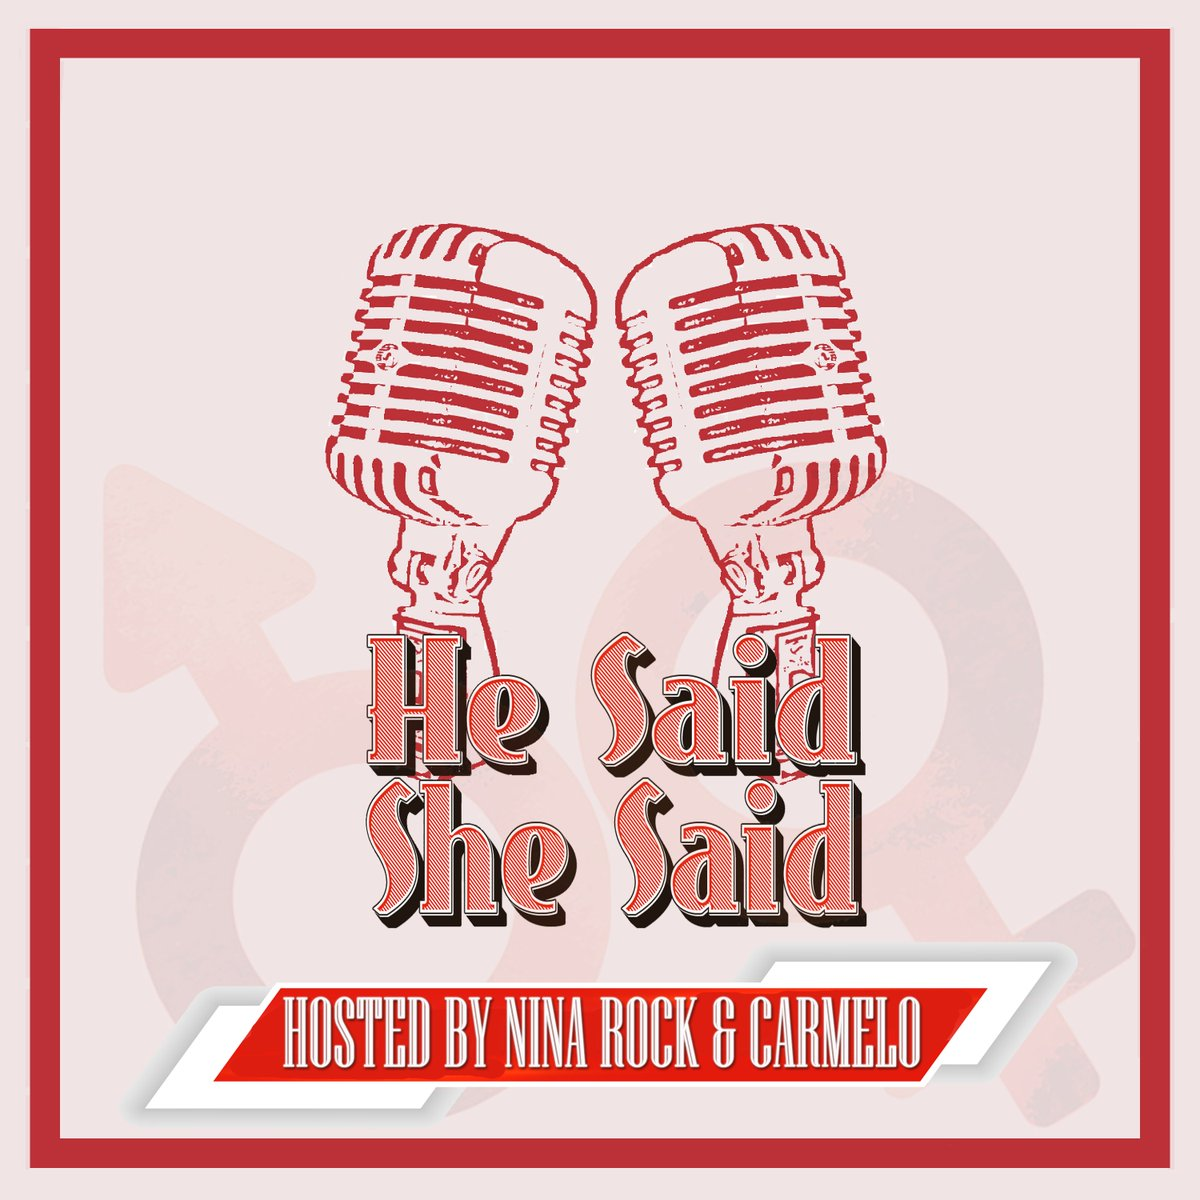 You do not want to miss the next He Said She Said, Wed. July 15, 2020 at 7 PM. As Nina Rock and I discuss Selling sex, Only Fans, etc. and the stigma that is encountered. https://t.co/YBqu10uJgV #hesaidshesaid #scradio #podcast https://t.co/RsYZ0DVLn3